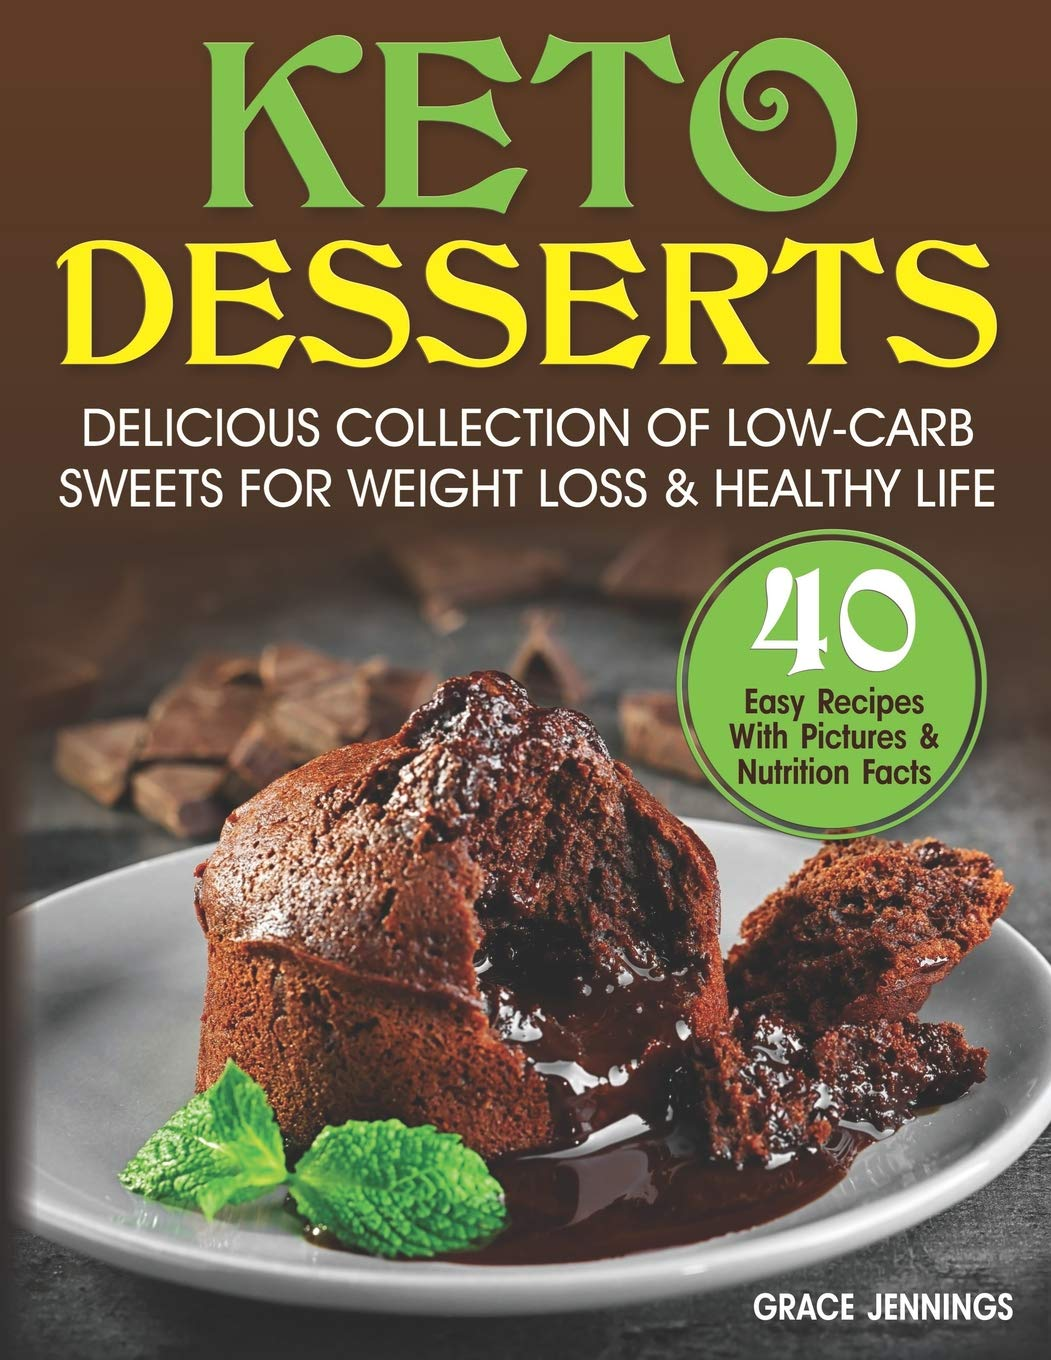 Cheap Keto Sweets Keto-Friendly Dessert Recipes Price Colors